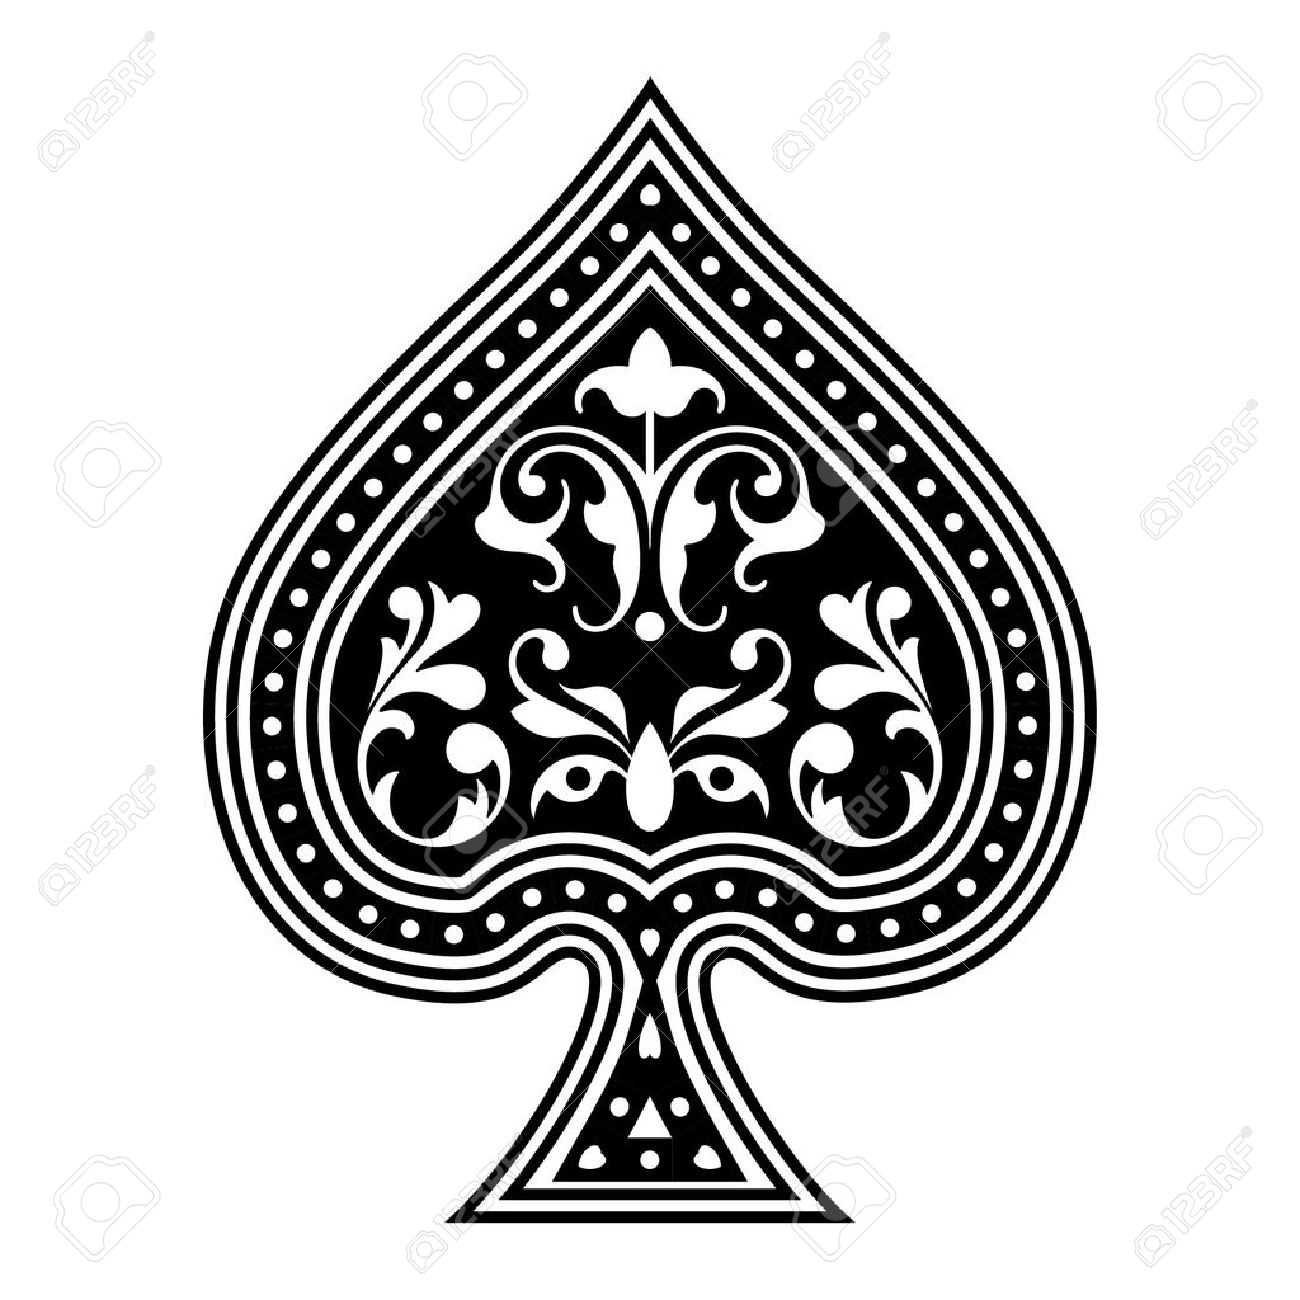 stock illustrations cliparts. Ace of spades clipart eyes